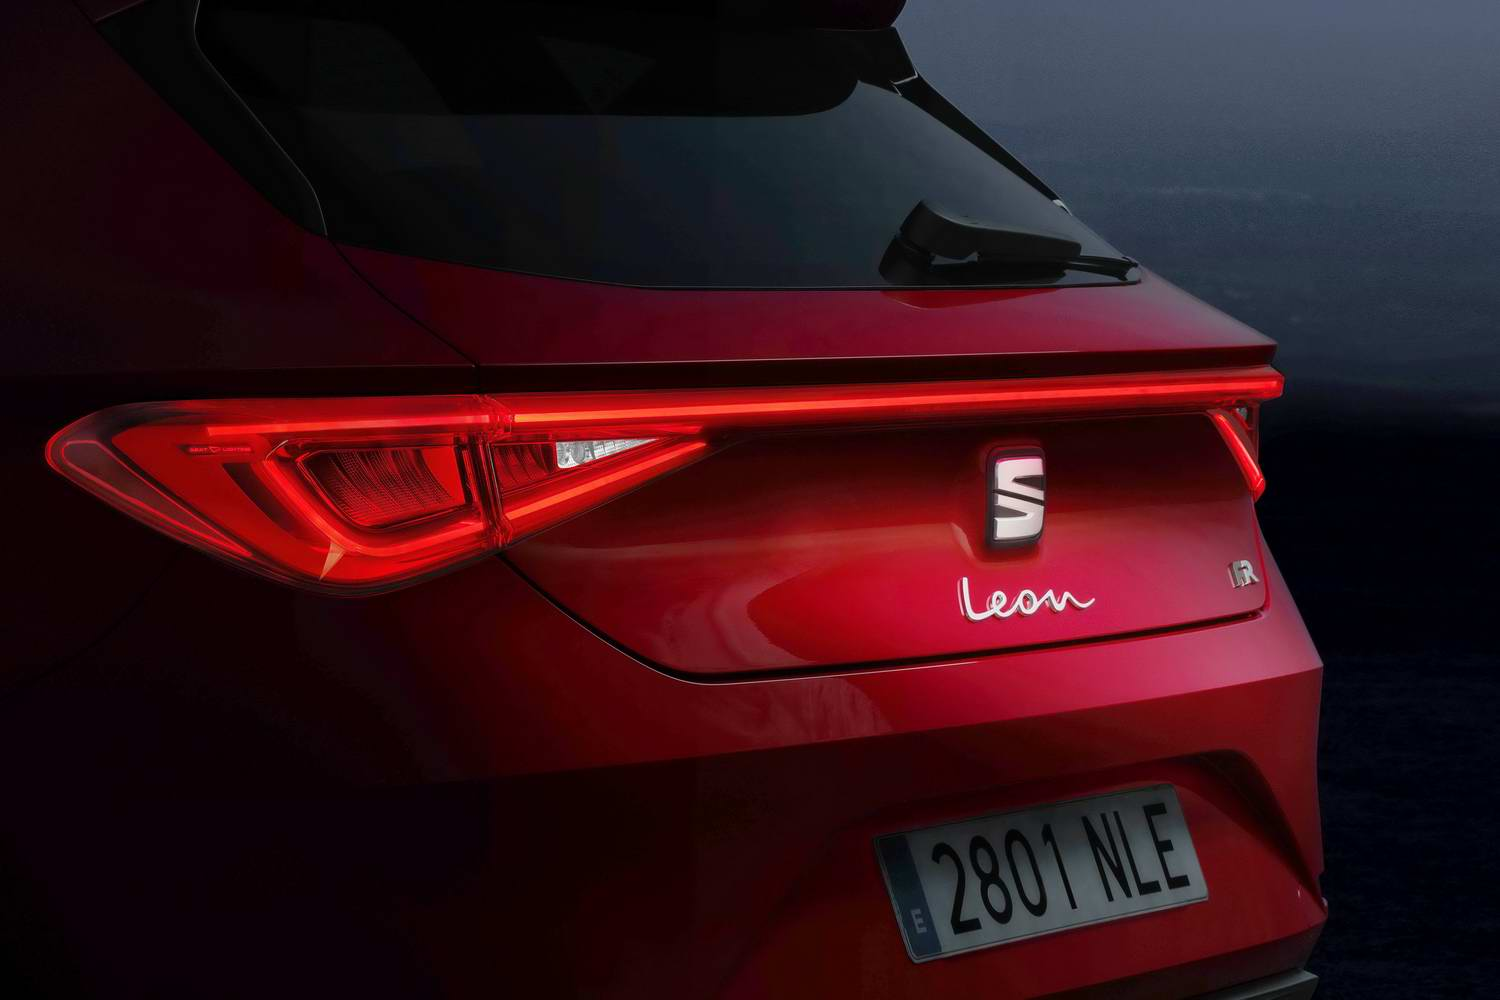 Car News | SEAT gears up for new Leon launch | CompleteCar.ie